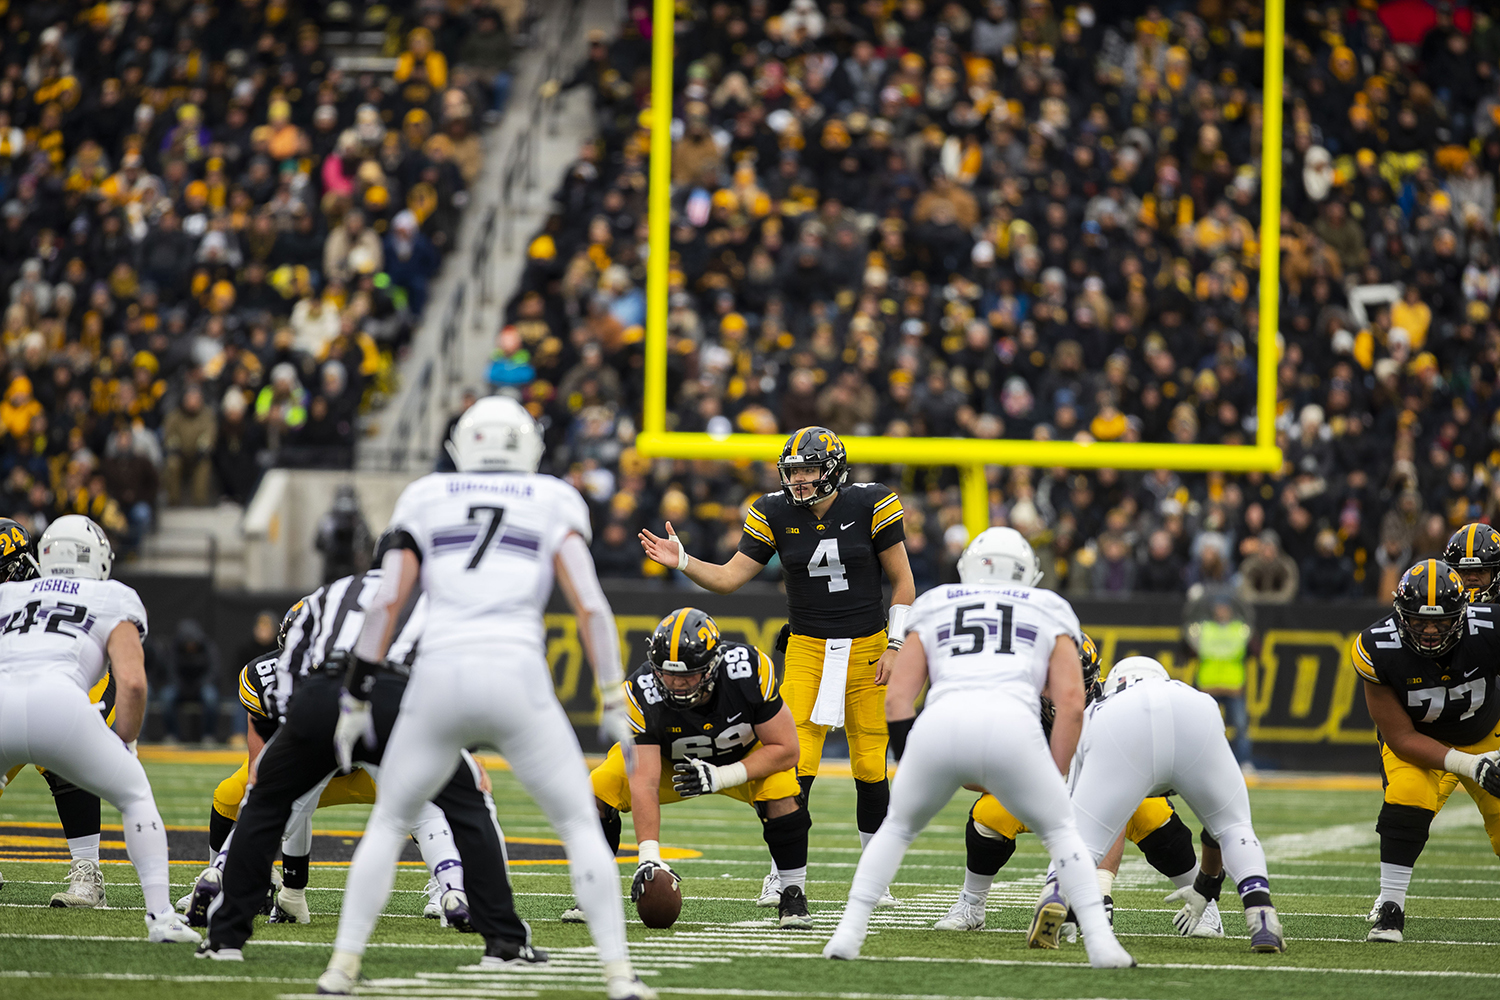 Iowa+quarterback+Nate+Stanley+gestures+during+the+Iowa%2FNorthwestern+football+game+at+Kinnick+Stadium+on+Saturday%2C+November+10%2C+2018.+The+Wildcats+defeated+the+Hawkeyes%2C+14-10.+%28Lily+Smith%2FThe+Daily+Iowan%29